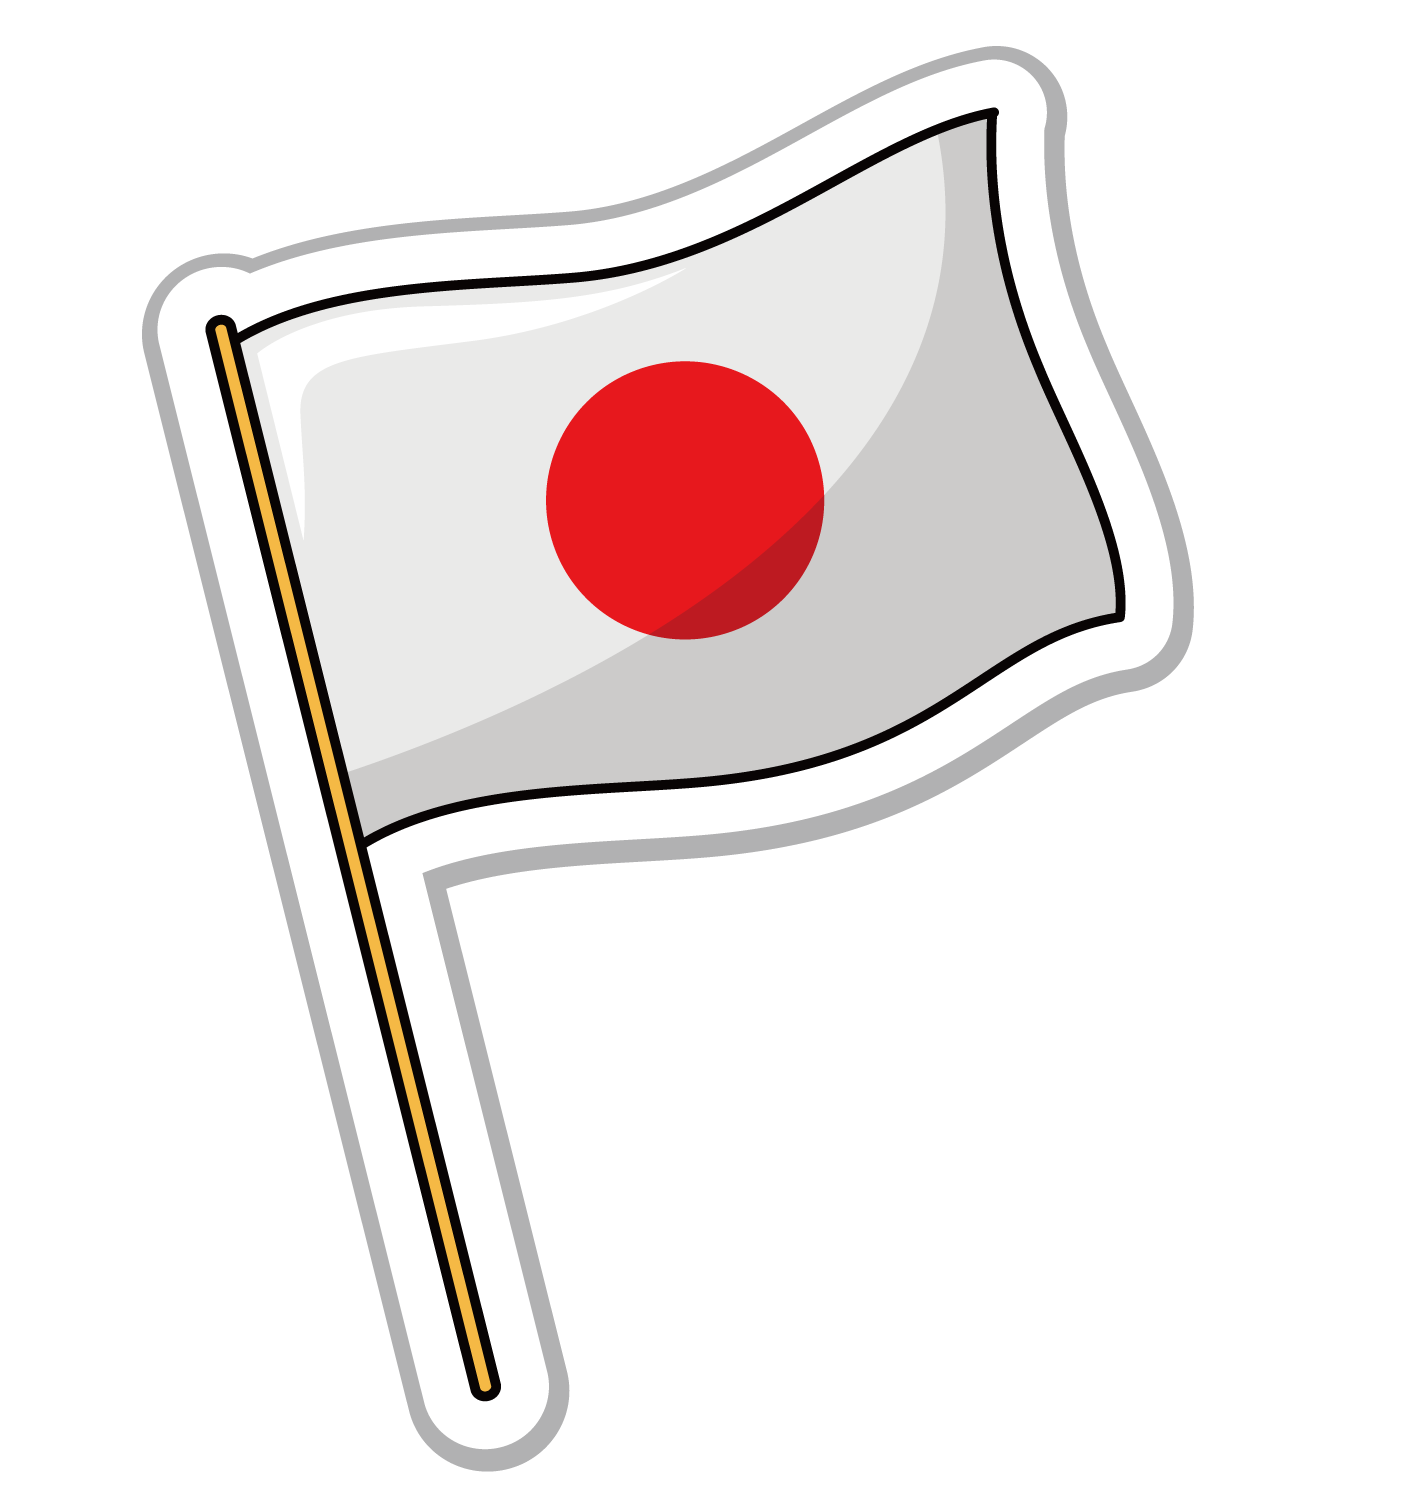 Flag of Japan Flag of the United States.